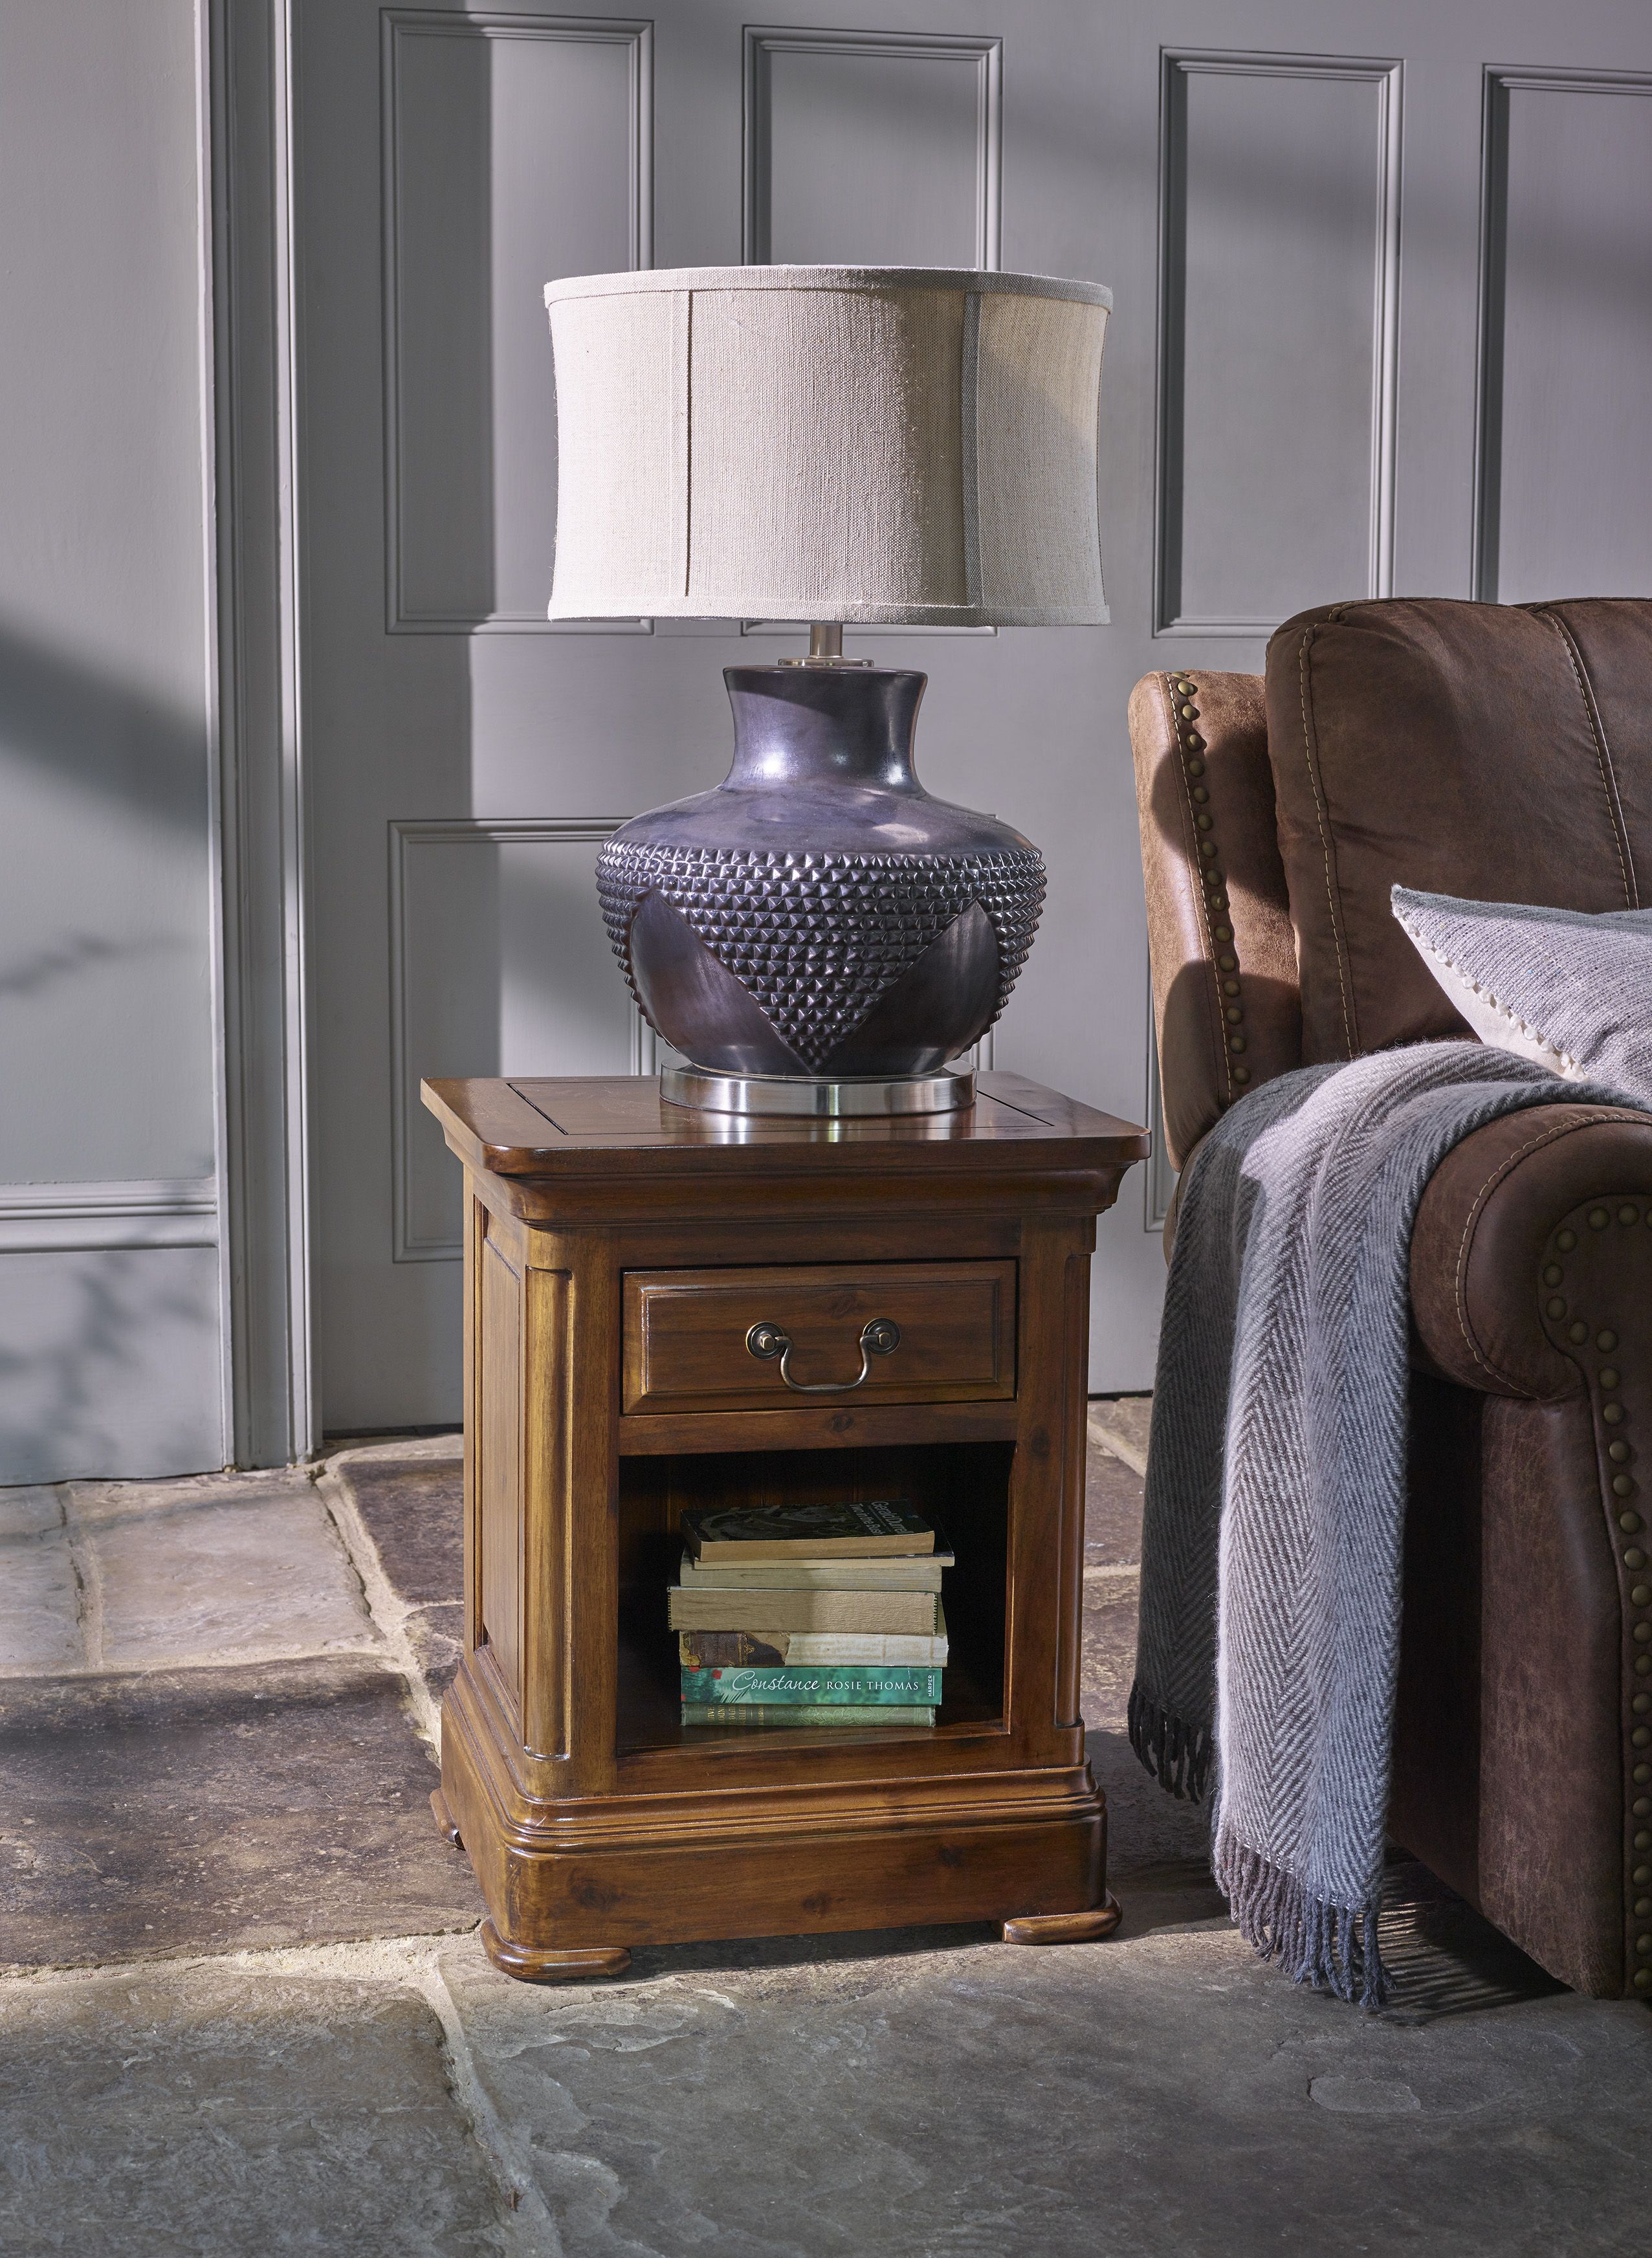 Our cranbrook dark wood solid hardwood side table is made to be an elegant and practical